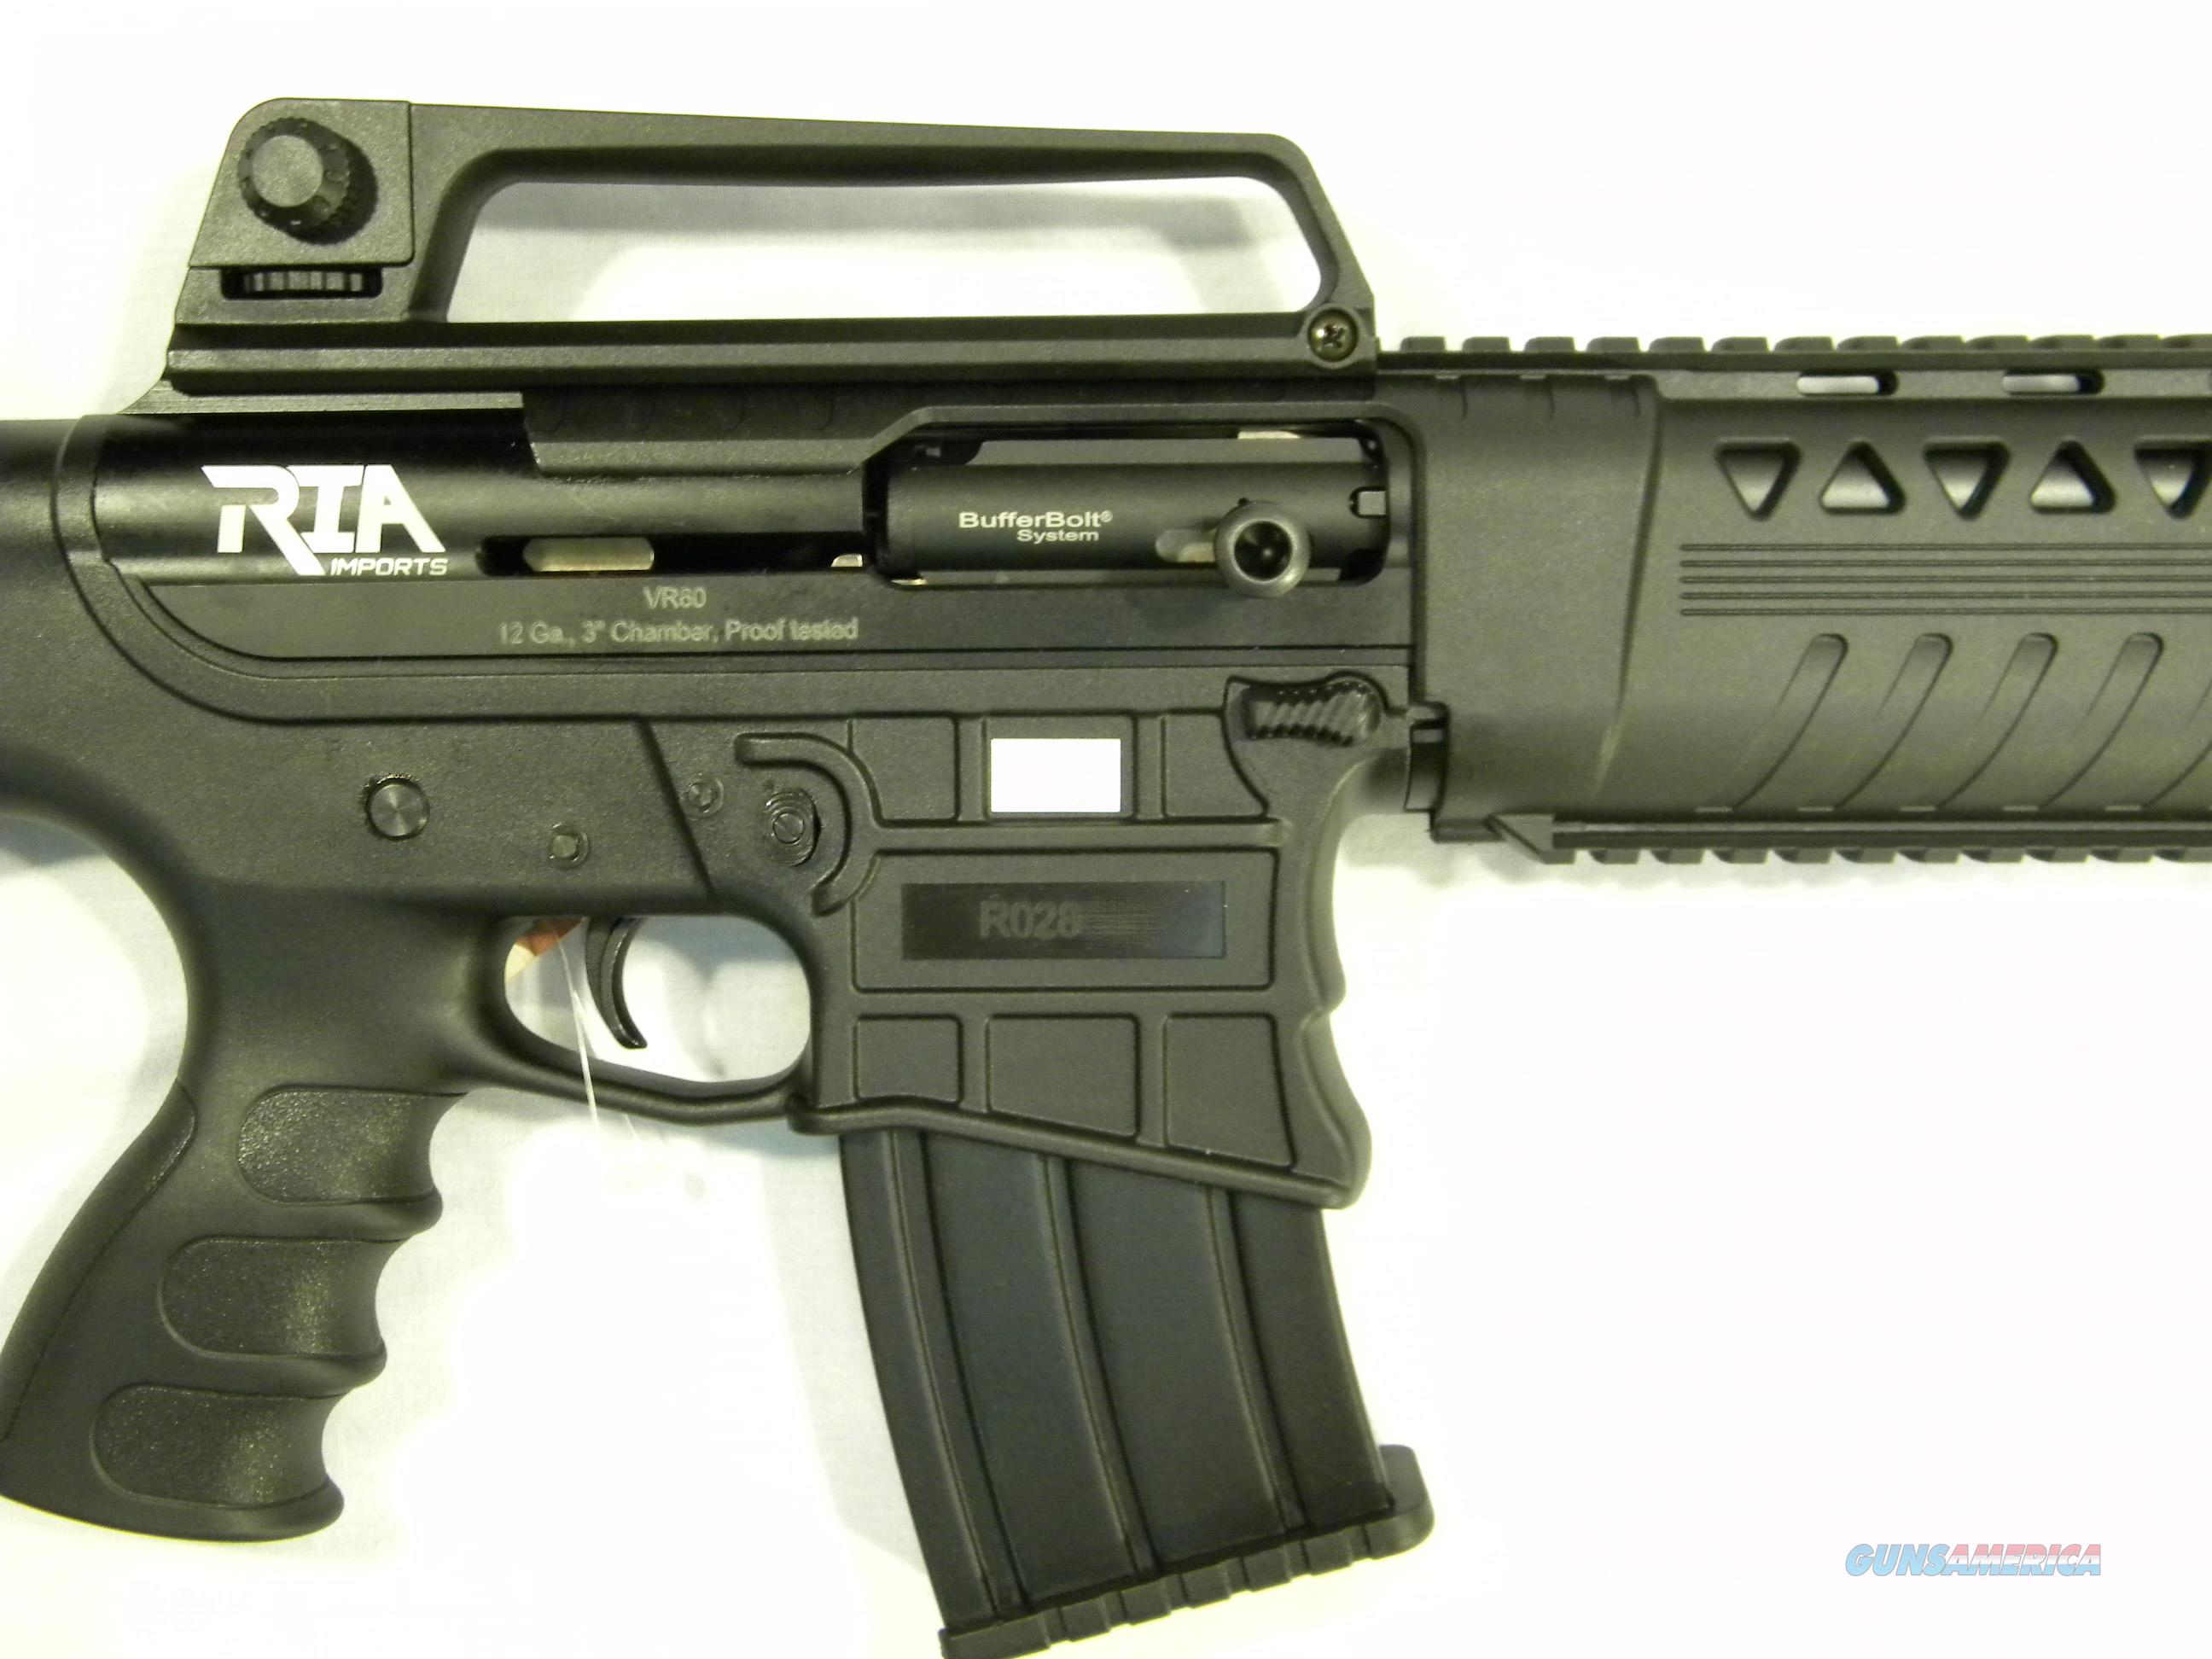 Rock Island Armory VR60, AR-Style Semi-Auto 12 ... For Sale